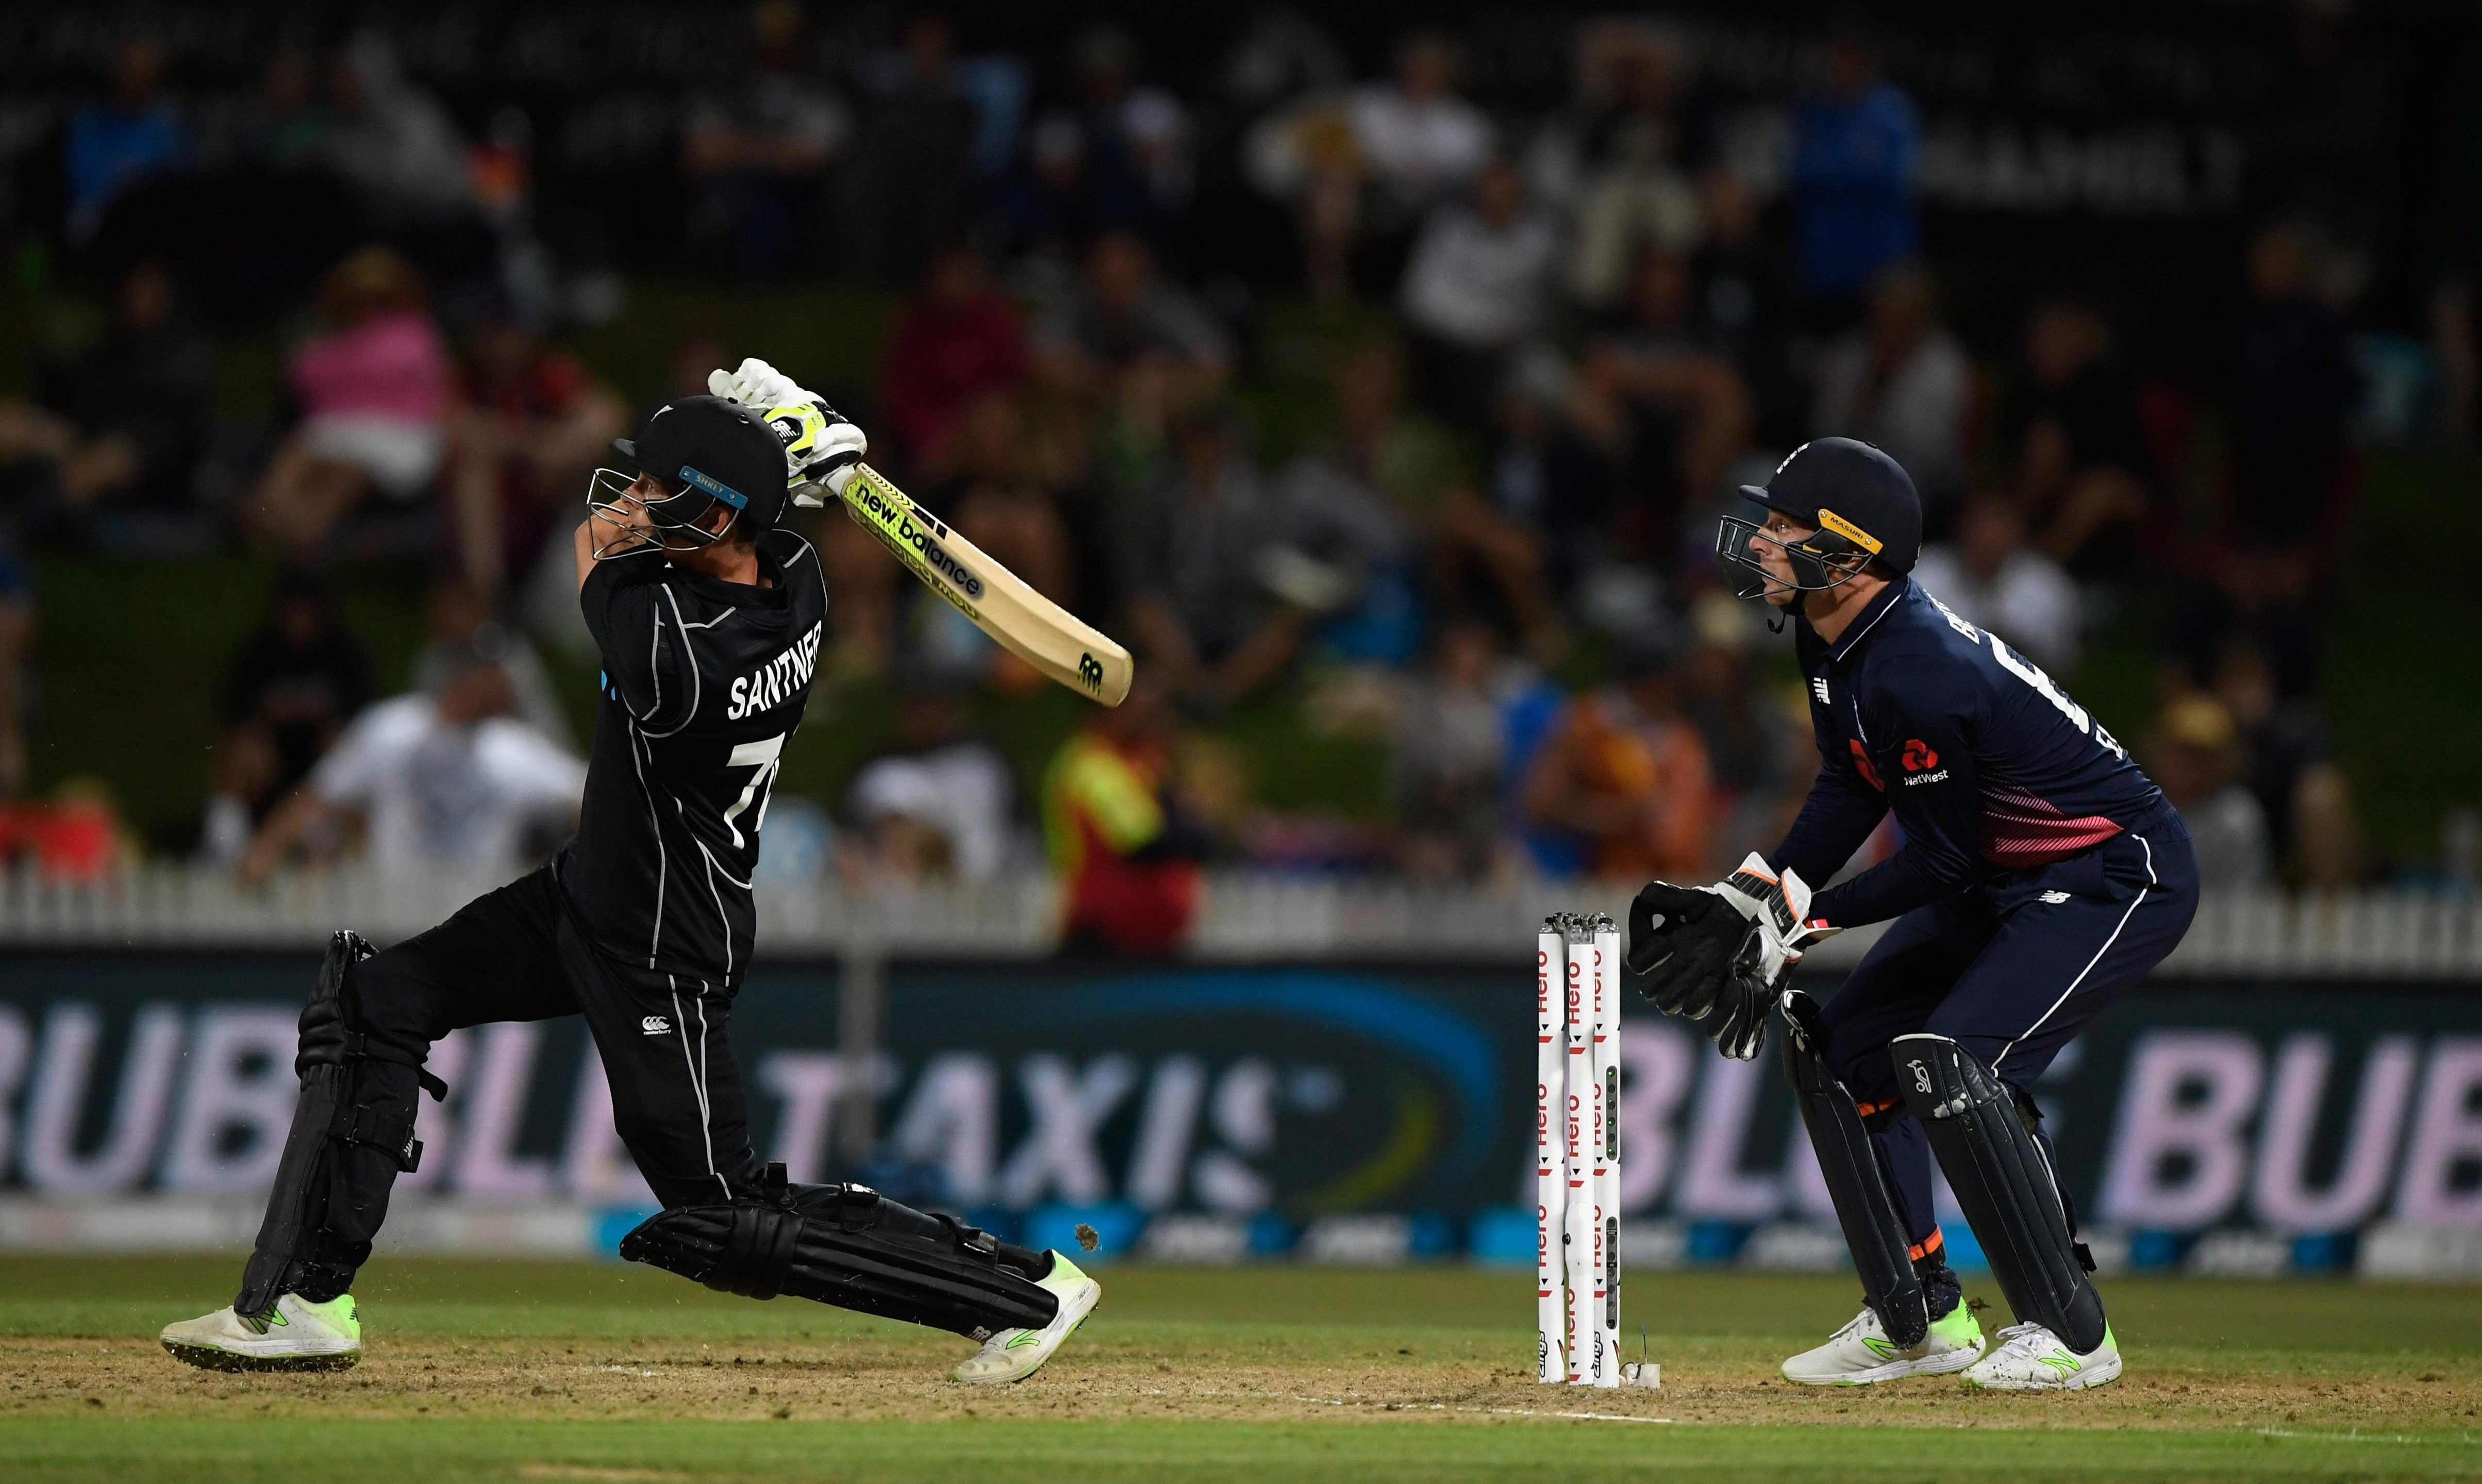 Mitchell Santner smashed 45 not out to take the game away from England